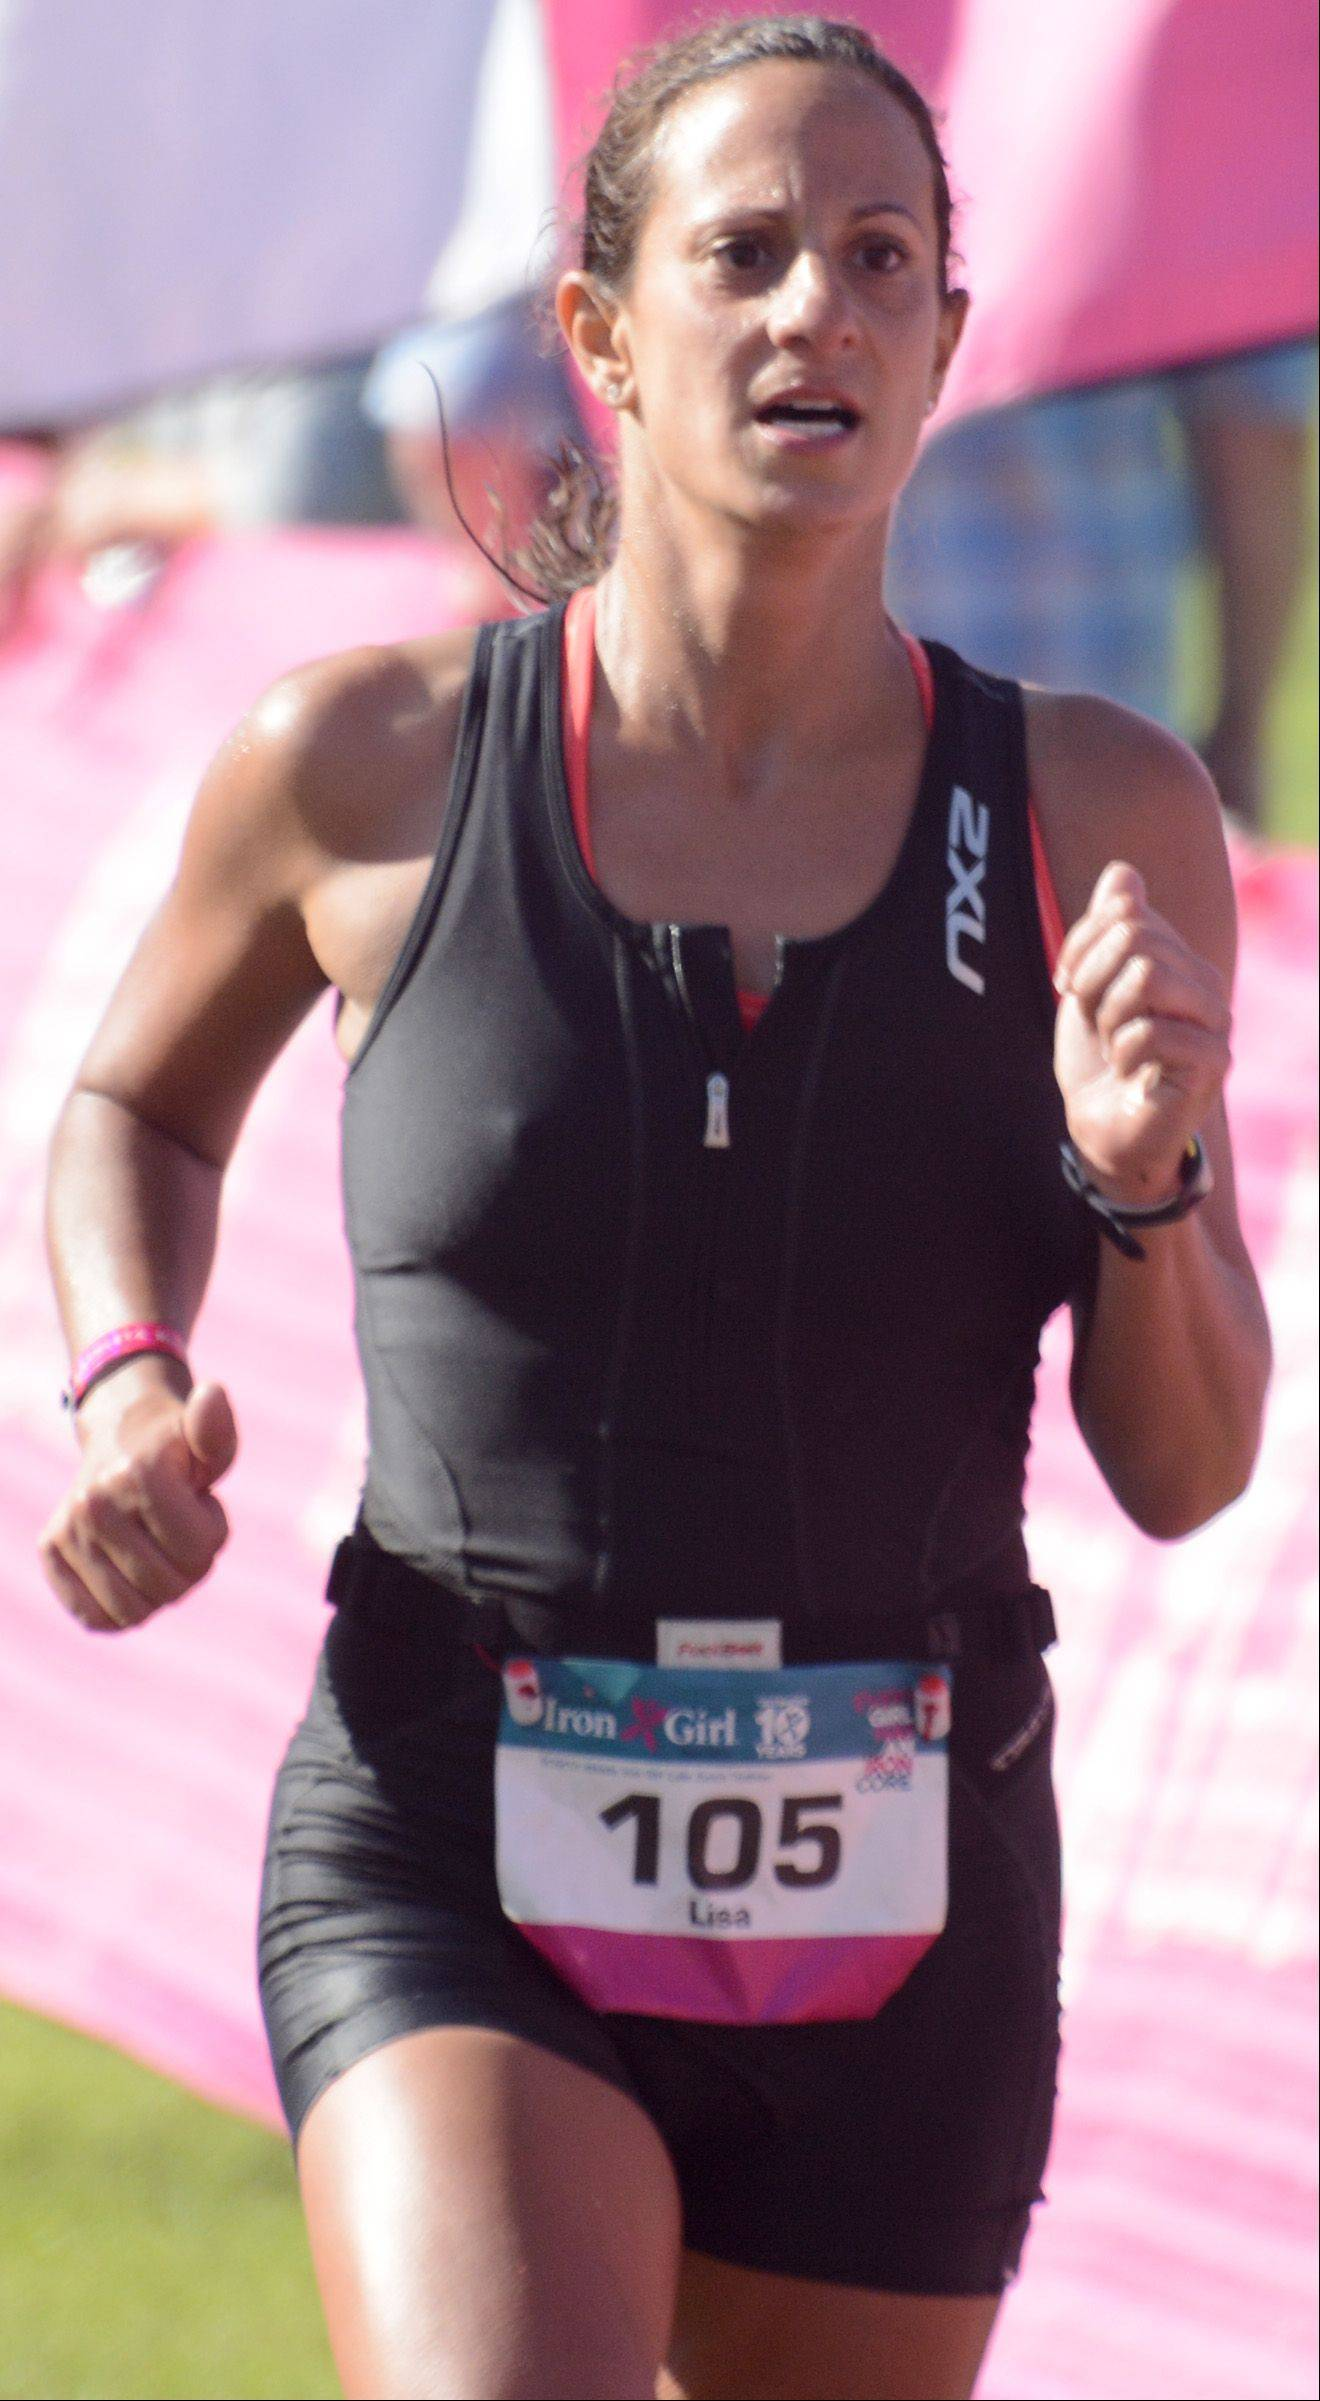 Lisa Bishop, of Carol Stream, competes in the Athleta Iron Girl Triathlon in Lake Zurich Sunday.